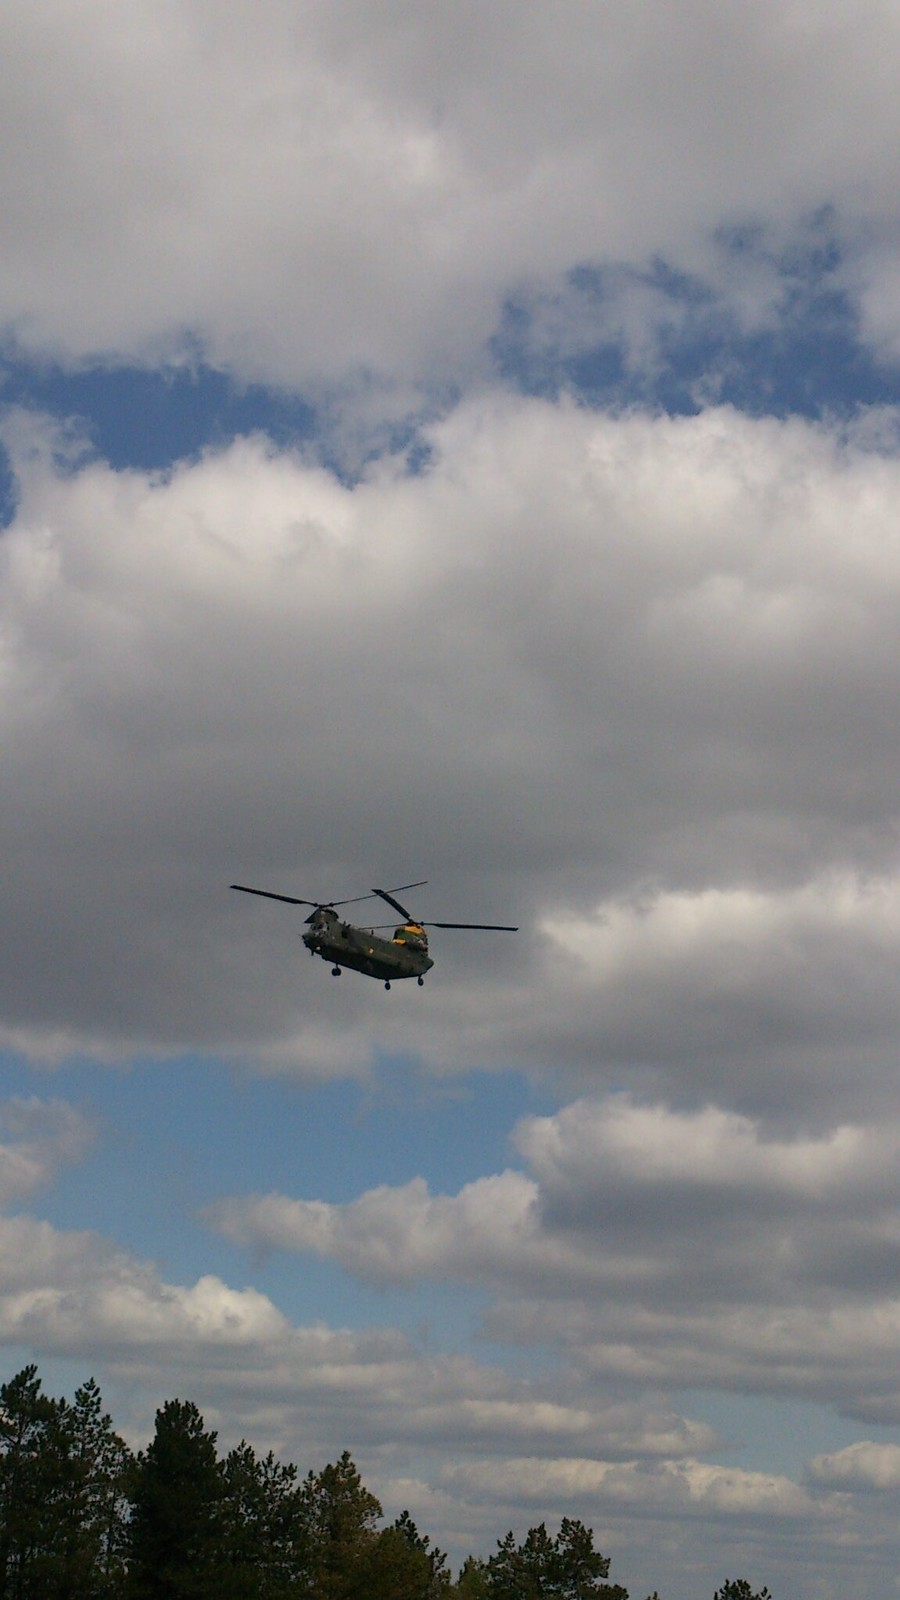 On Beacon Hill, Chopper approaching SWC Walk Rowlands Castle Circular - Extension